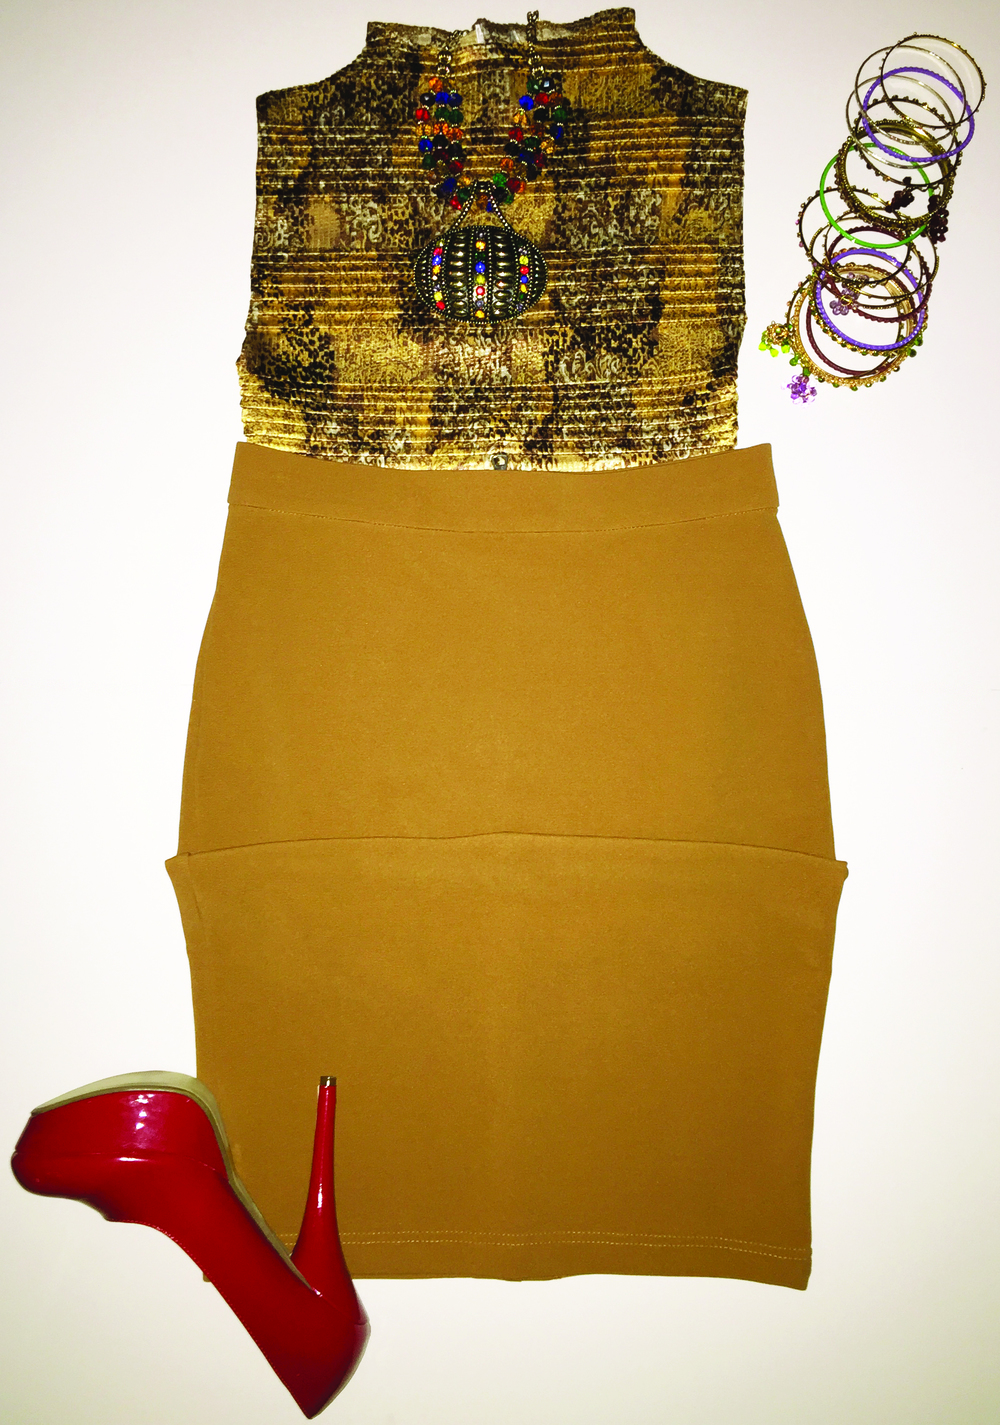 Beautiful accordion stretch turtle neck. Add 20 bracelets and a tight skirt and off you go.